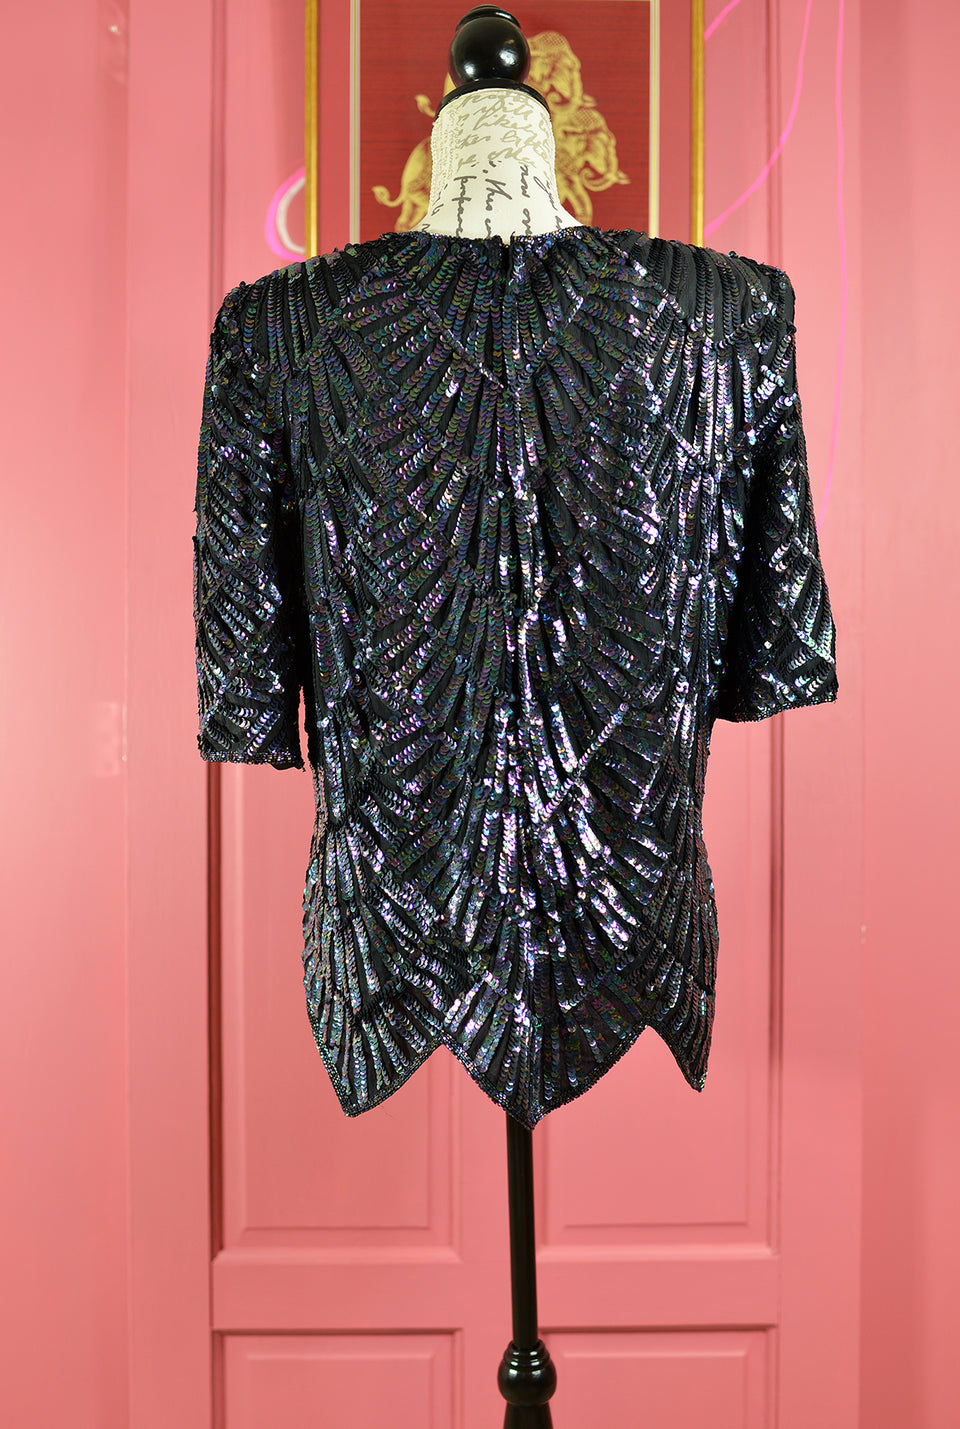 FRANK USHER 80's Art Deco Midnight Blue Silk Sequinned Top, Size M. Pre-loved.